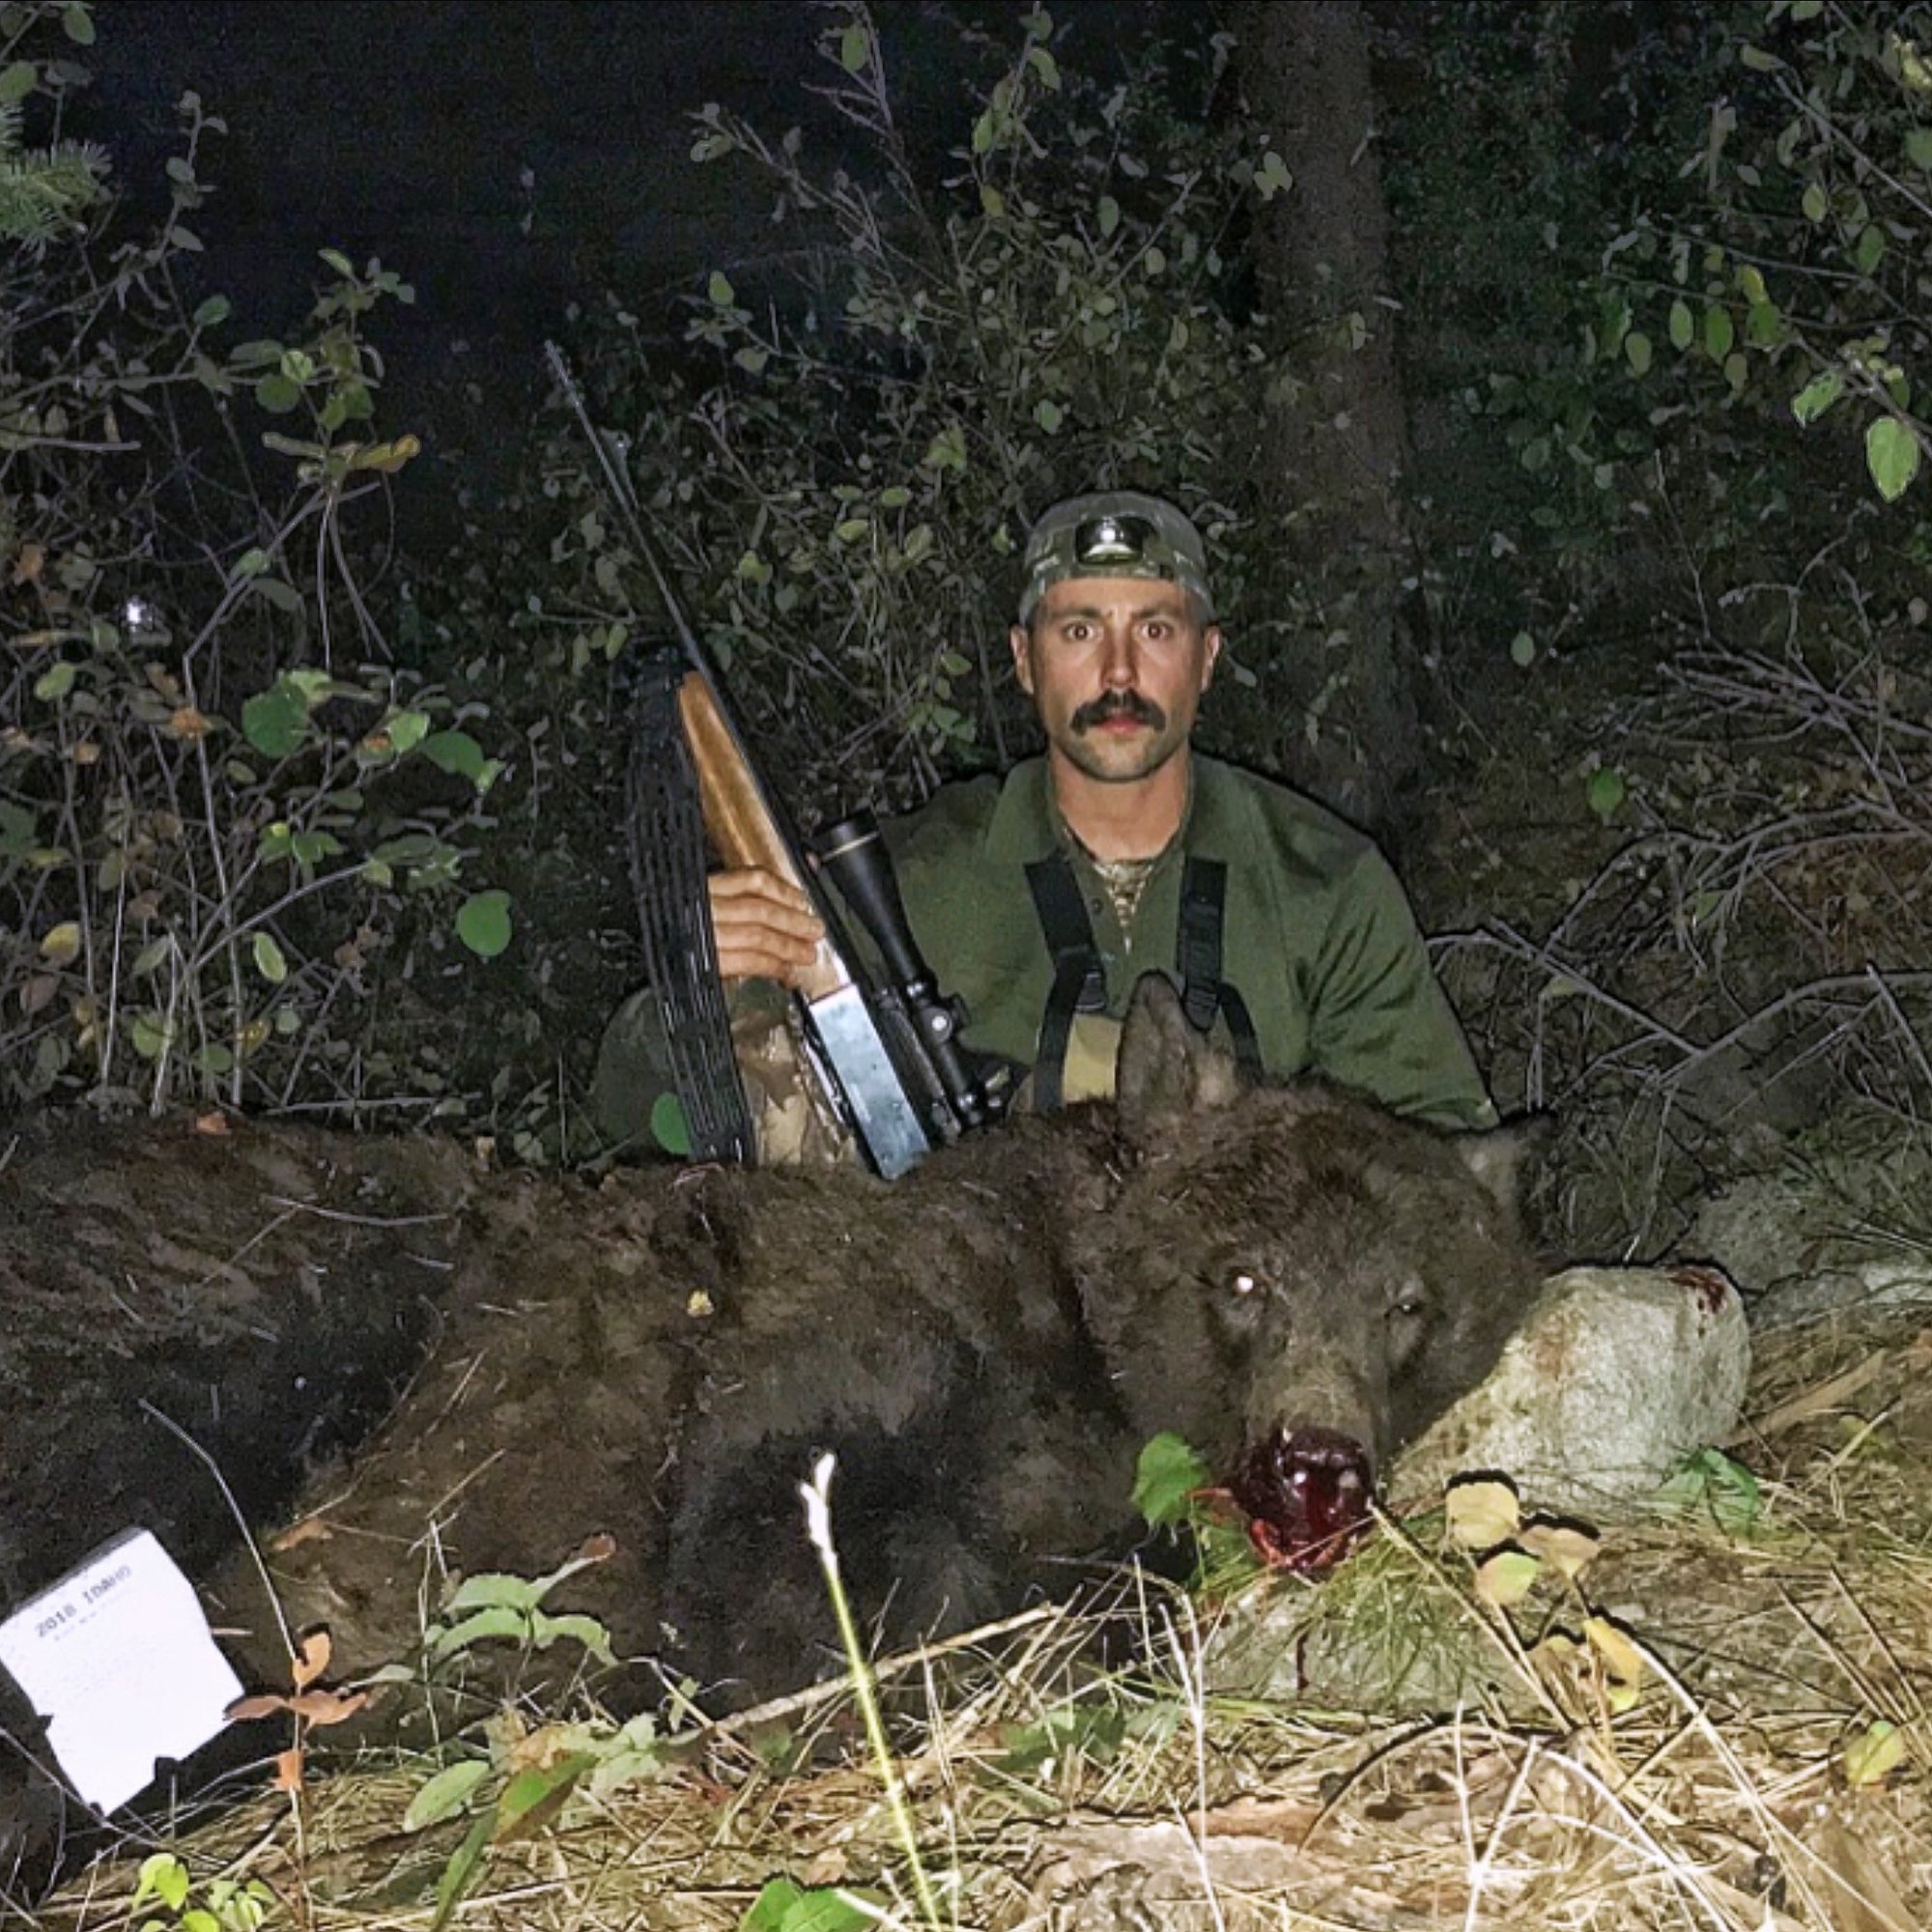 Bear Hunting in the Idaho Backcountry